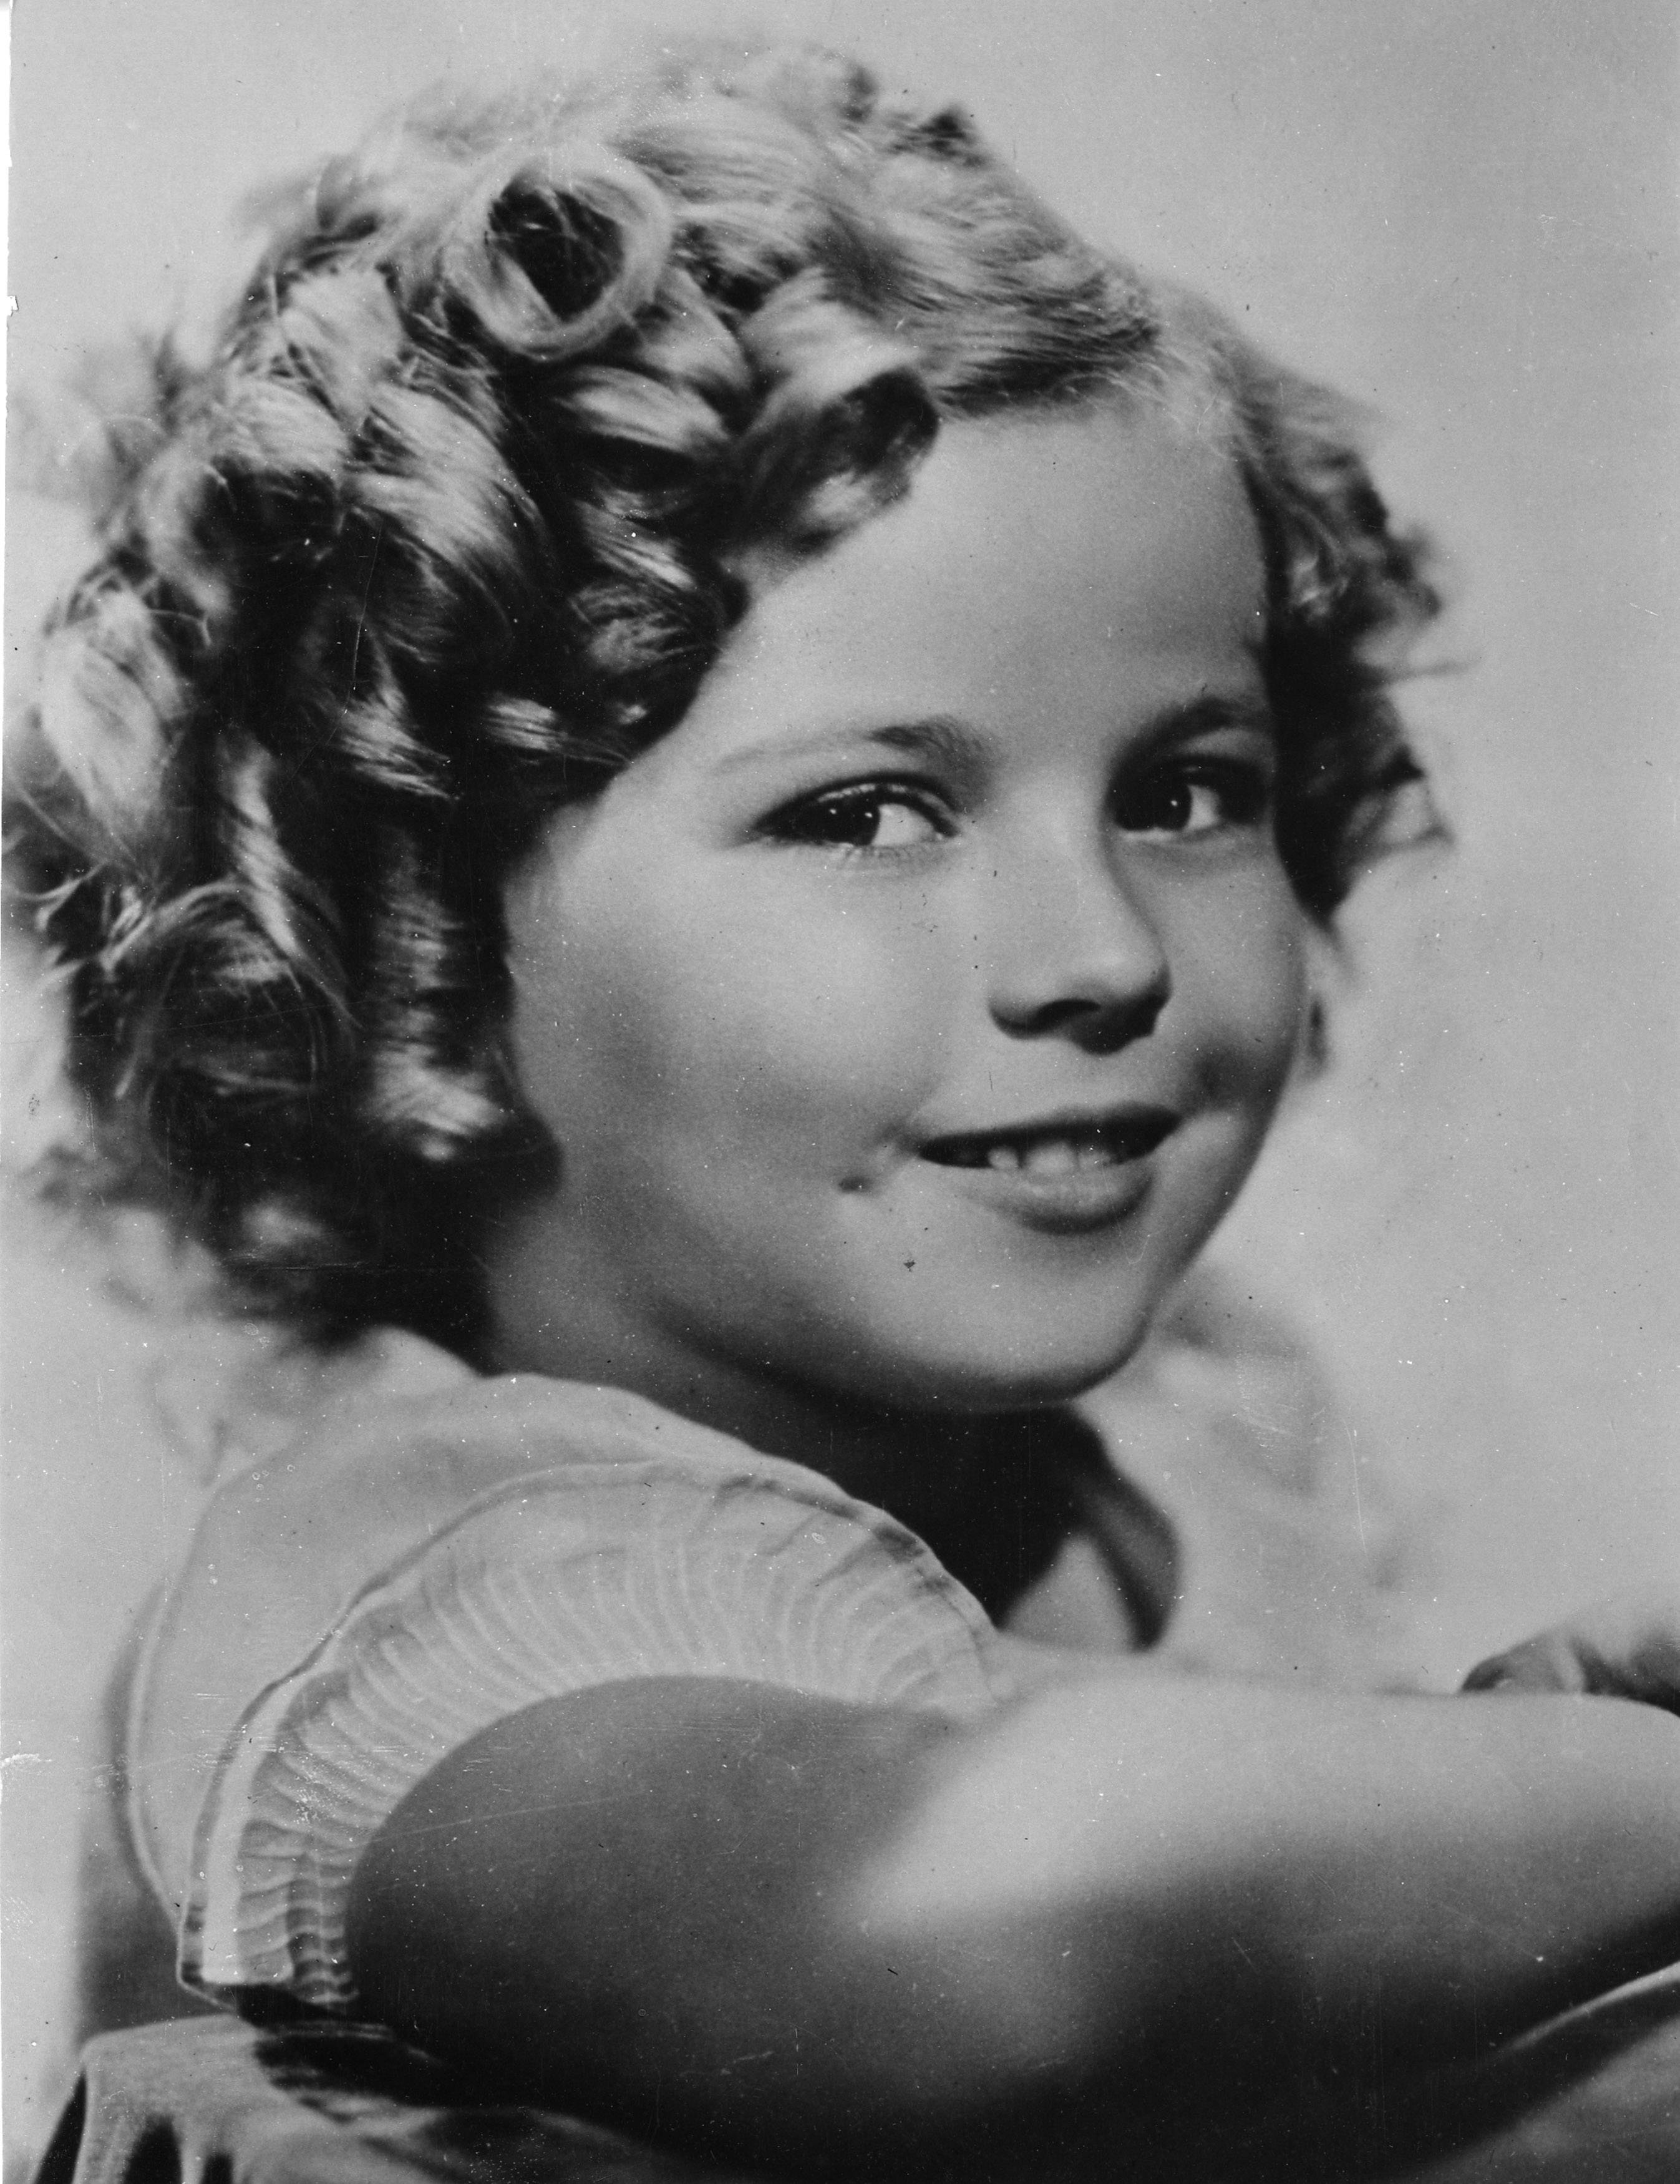 In this Nov. 1936 file photo, 8-year-old U.S. American child movie star Shirley Temple is portrayed in Hollywood, Ca.